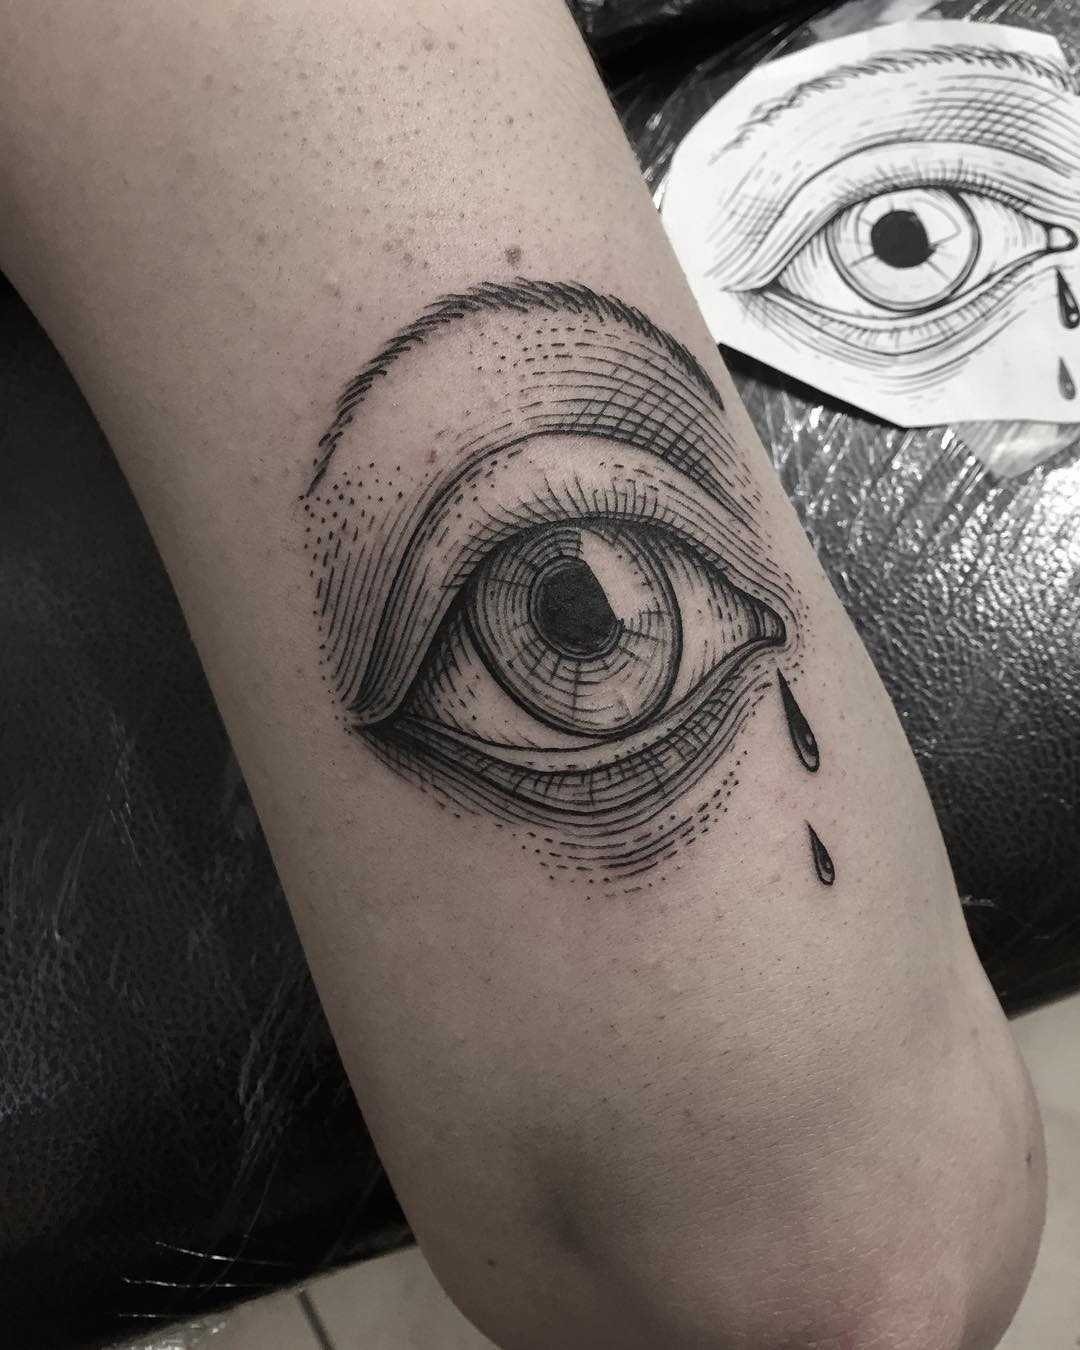 An etching eye was done at Primordial Pain Tattoo, Milano